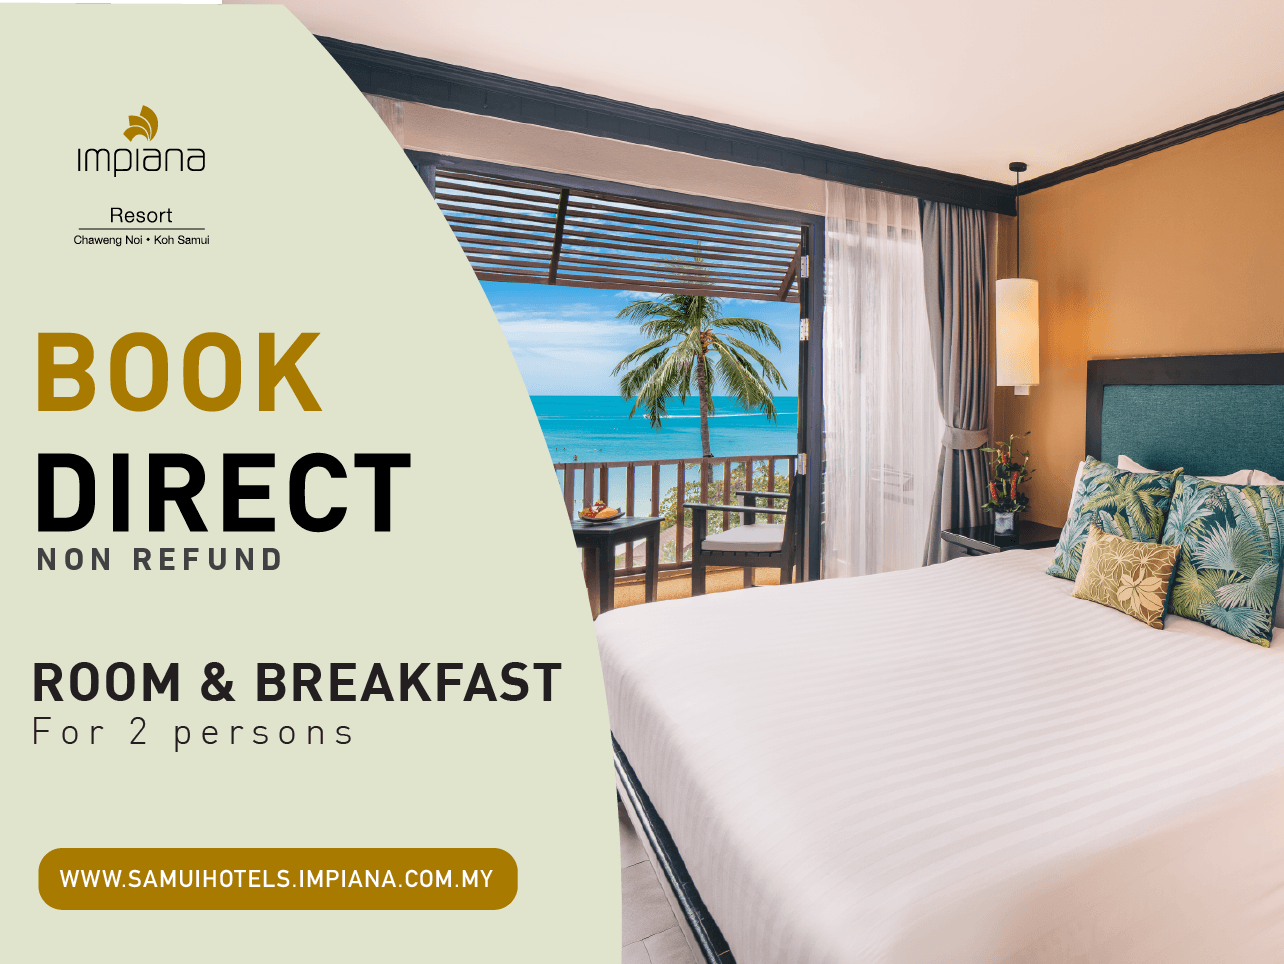 Room & Breakfast (Non refund)